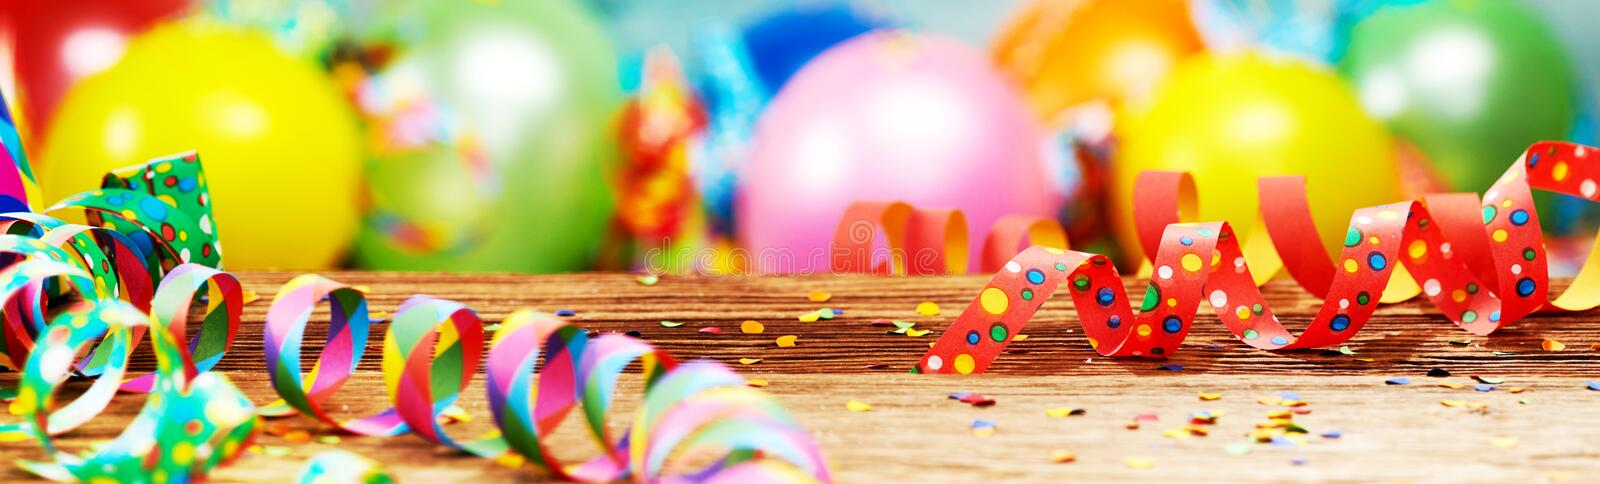 Panoramic party banner with balloons and streamers royalty free stock photo